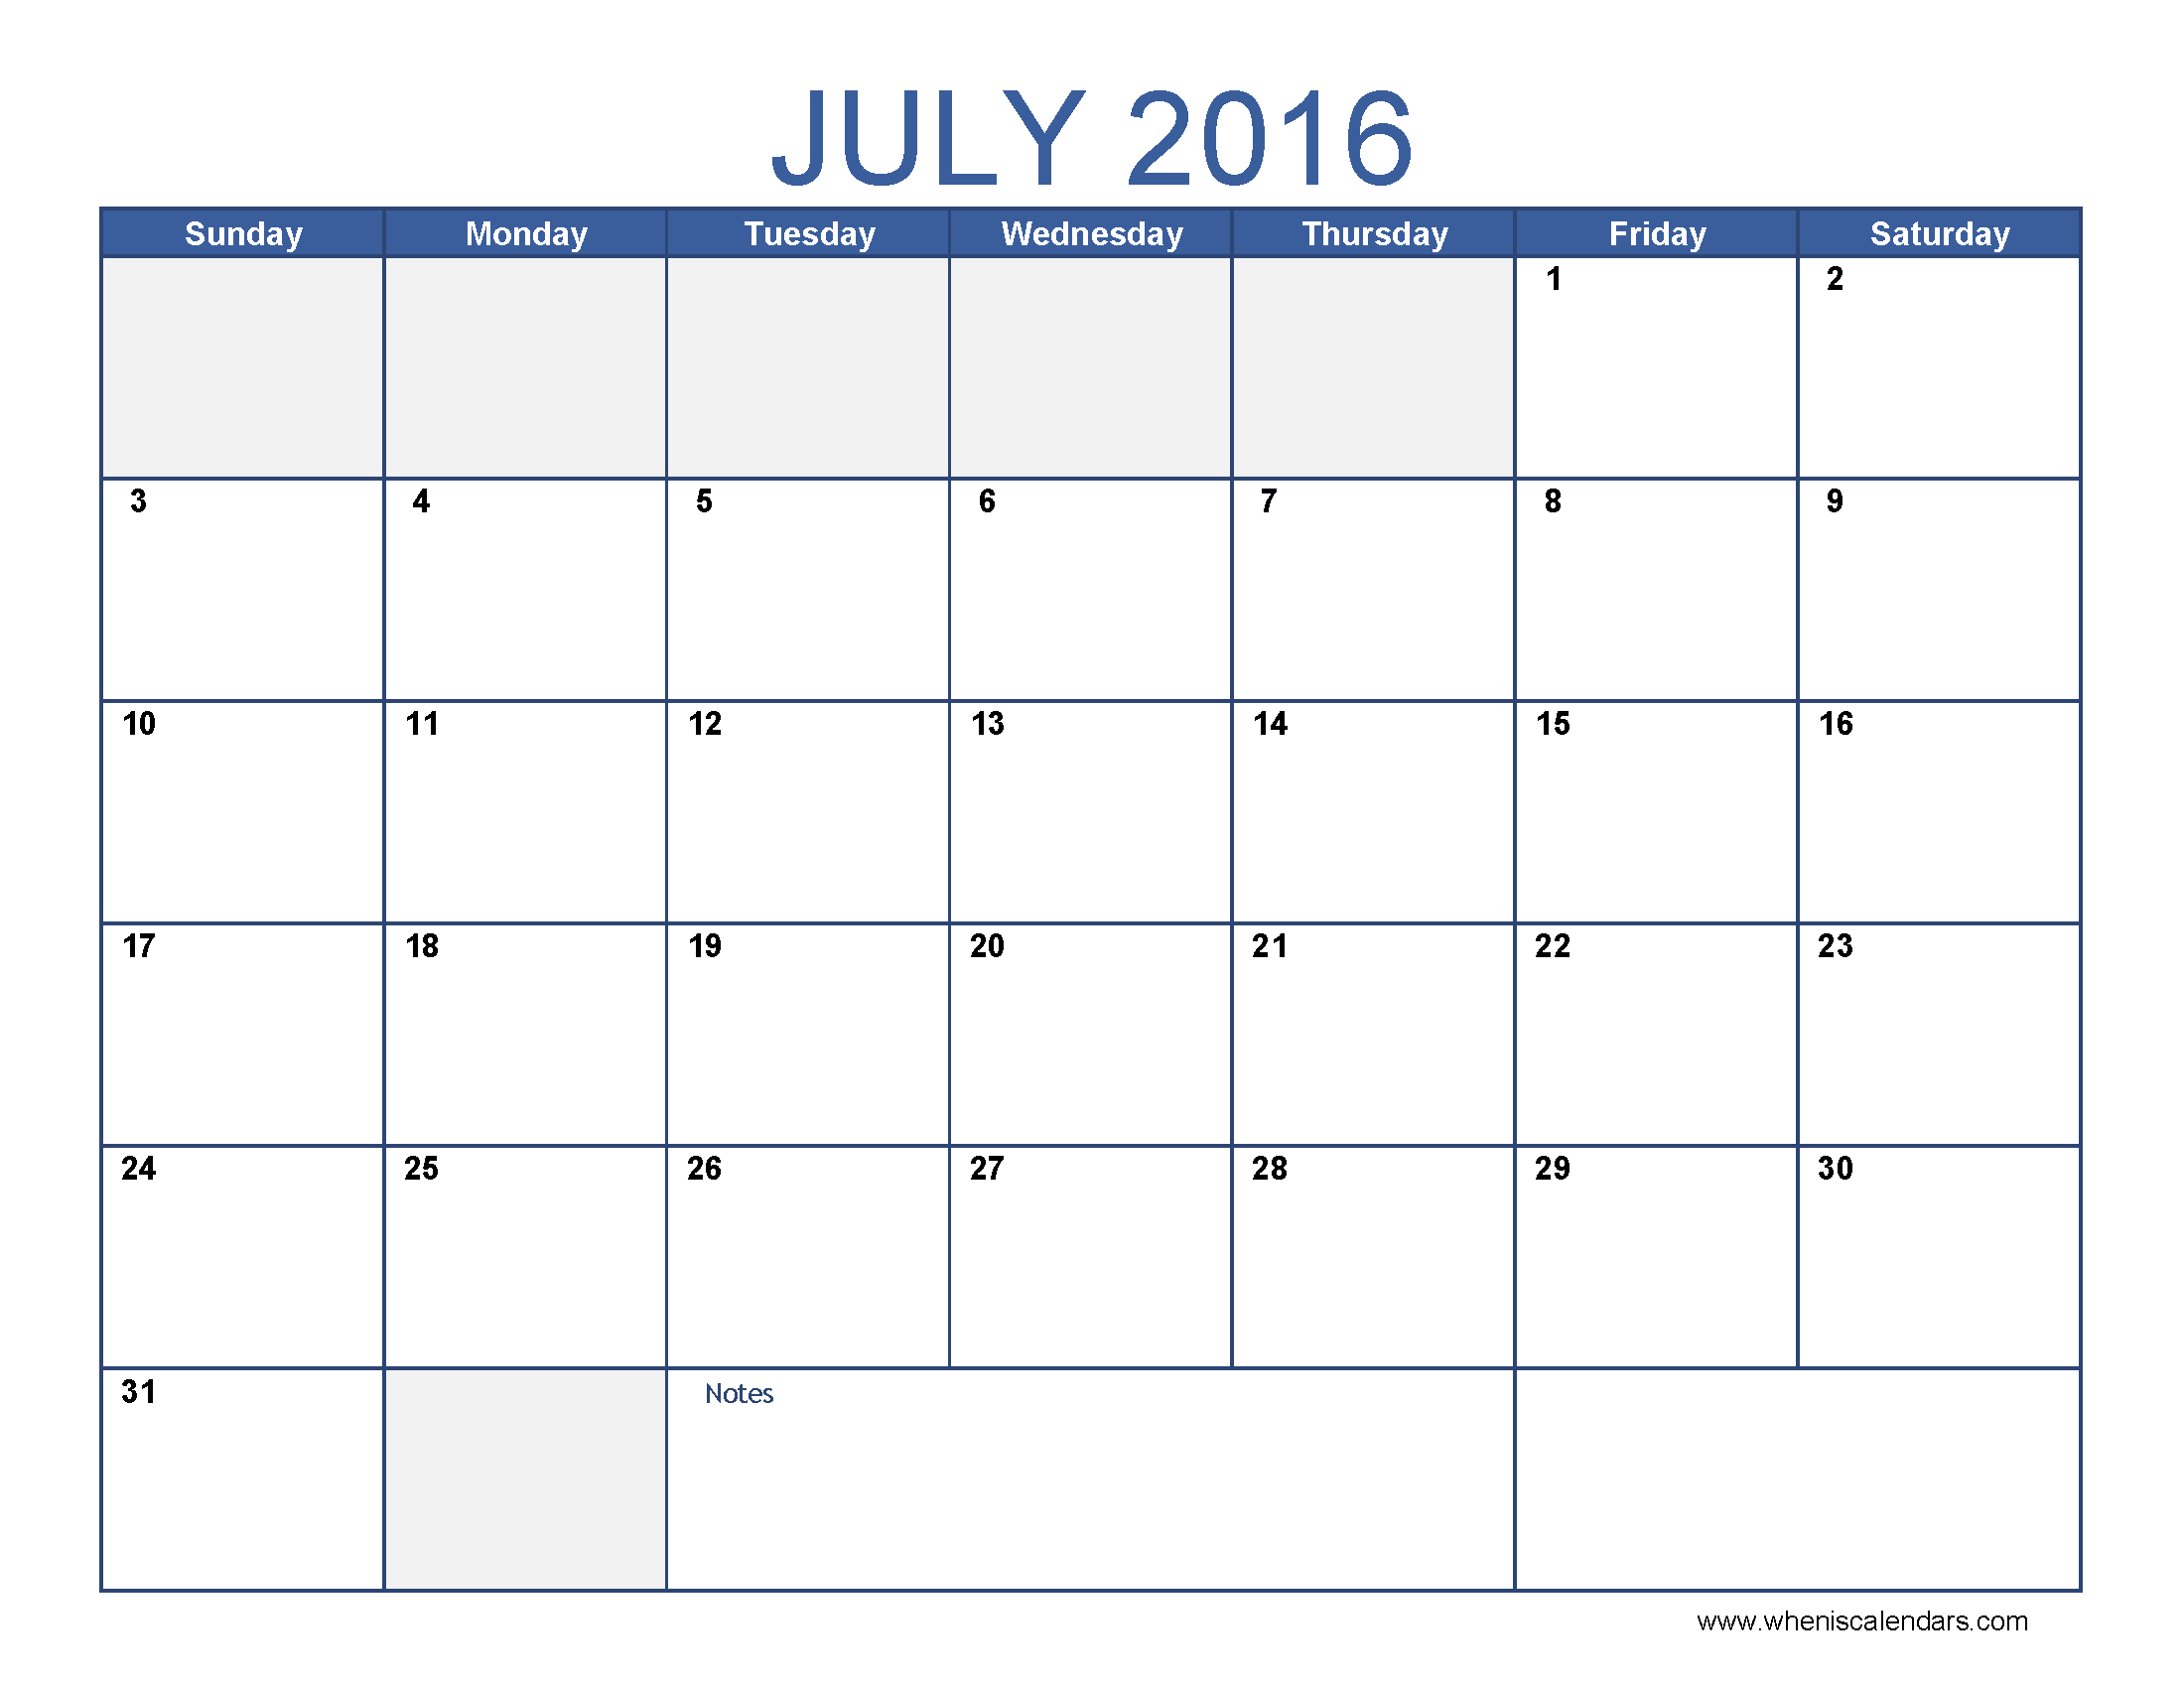 July clipart july 2016. Free calendar cliparts download